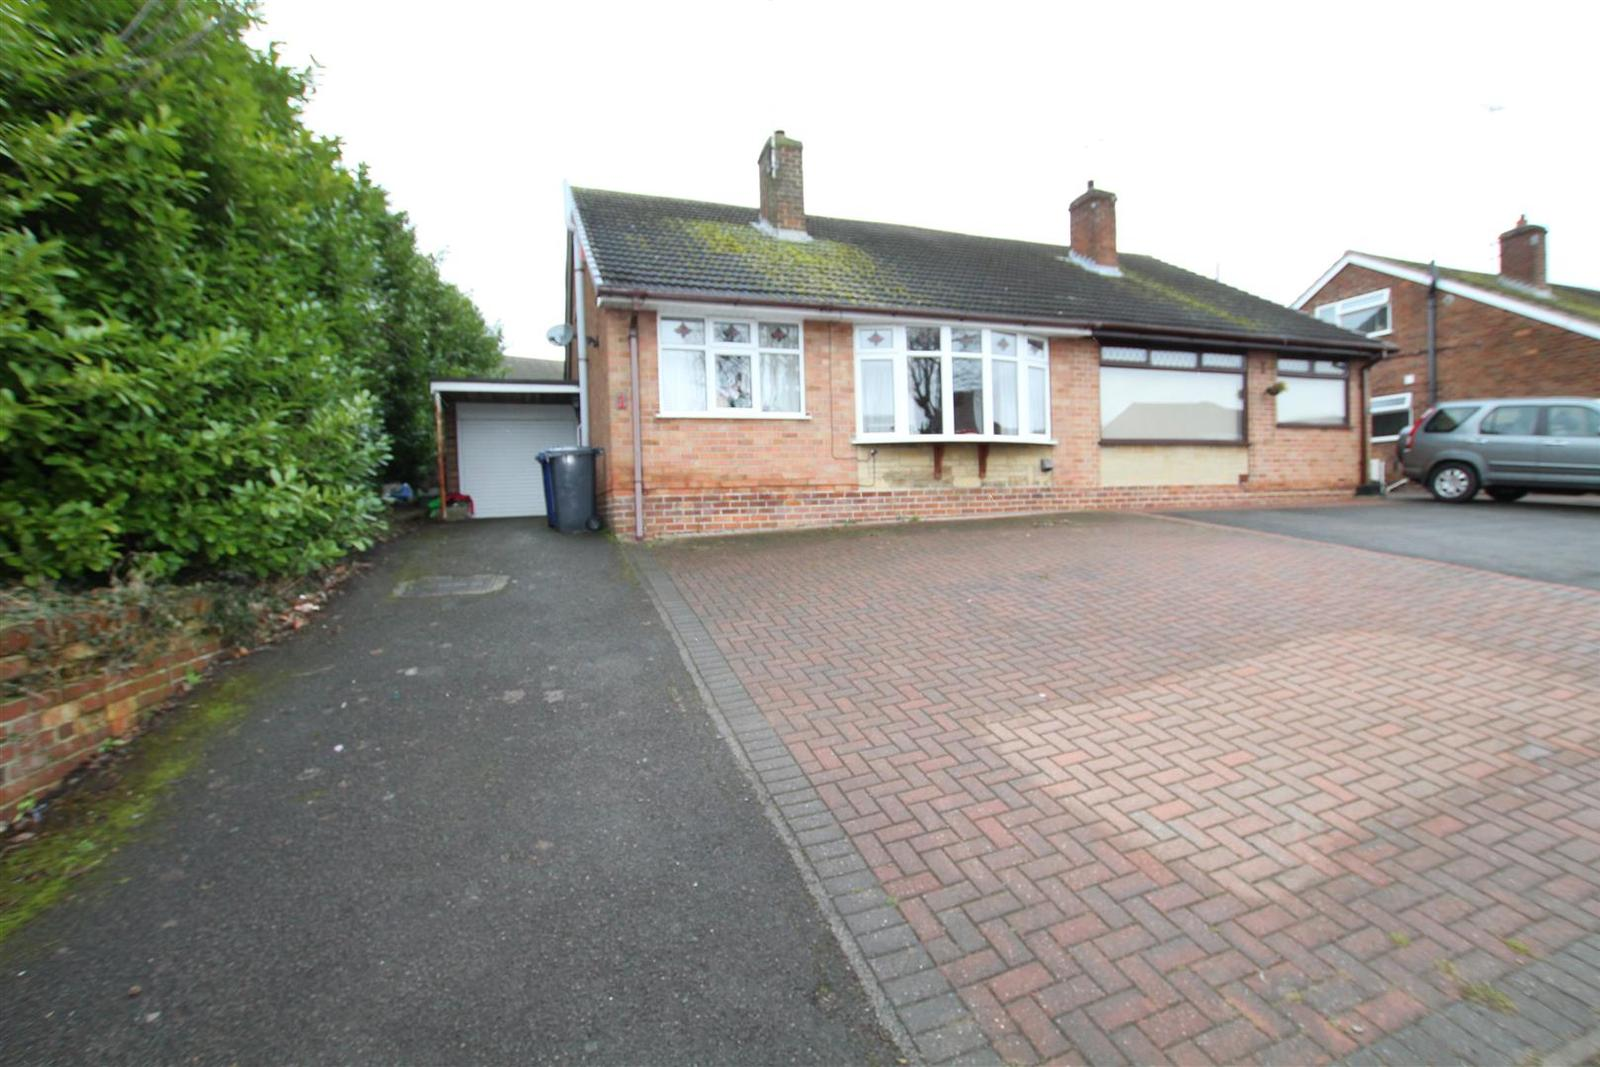 3 Bedrooms Property for sale in Farm Road, Burton